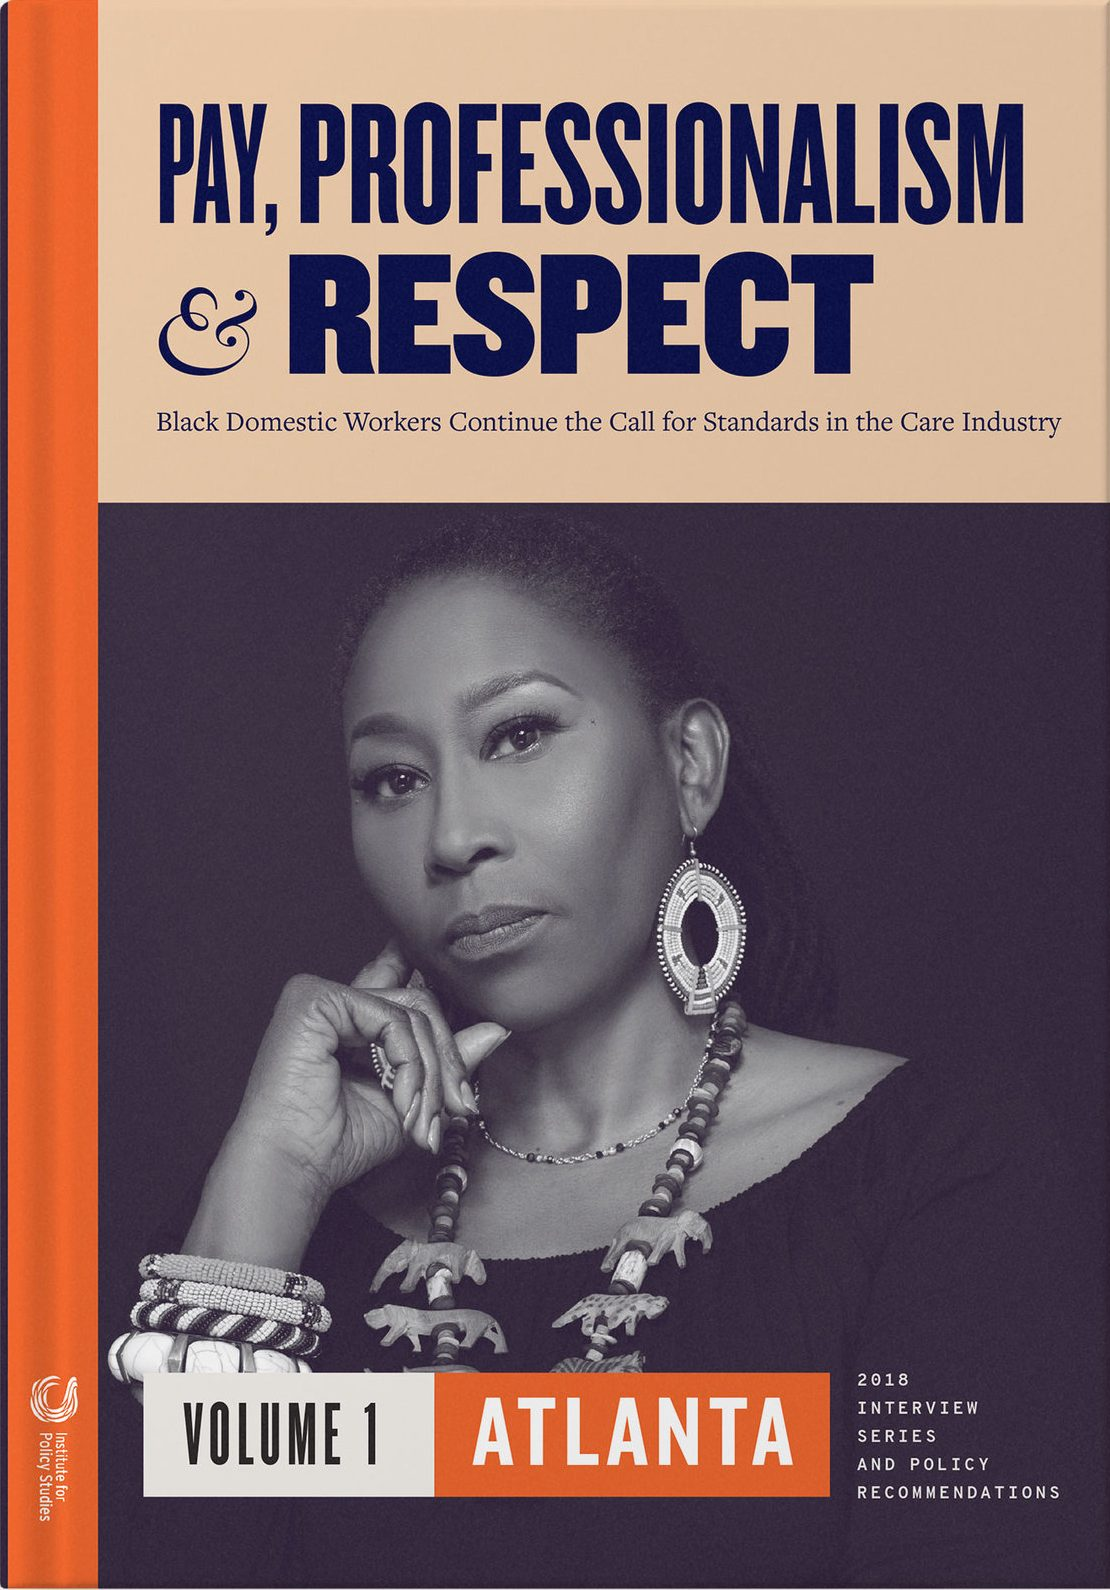 Pay, Professionalism & Respect report Volume 1